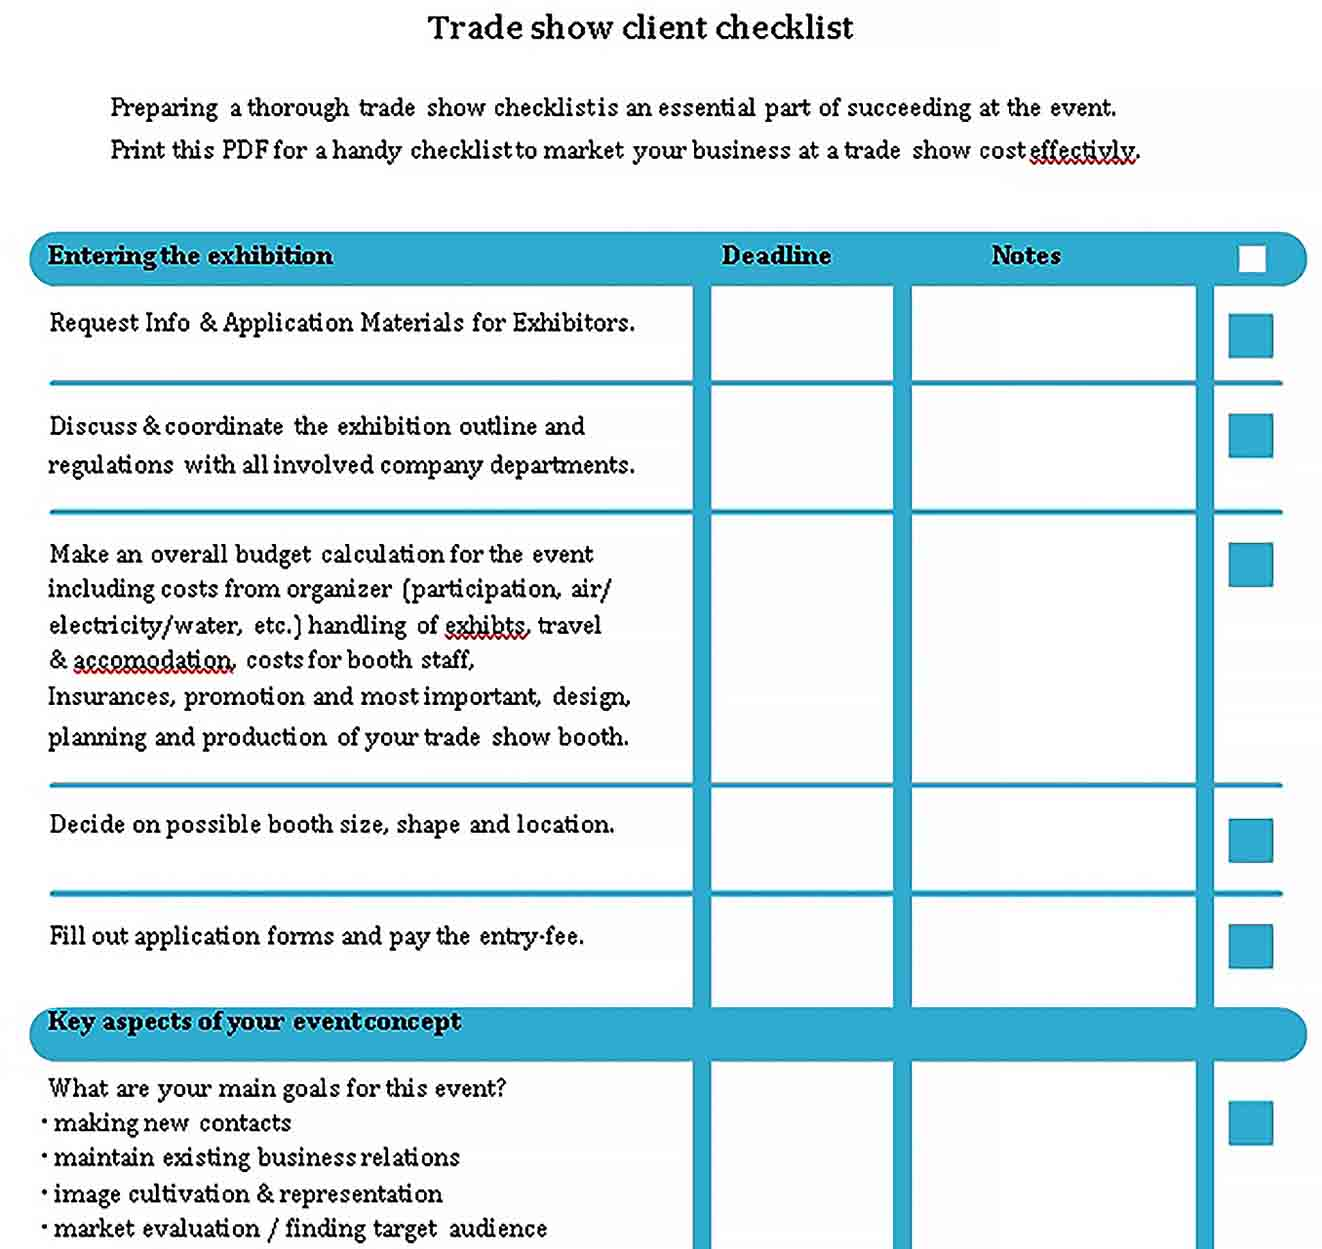 Template Trade show client checklist